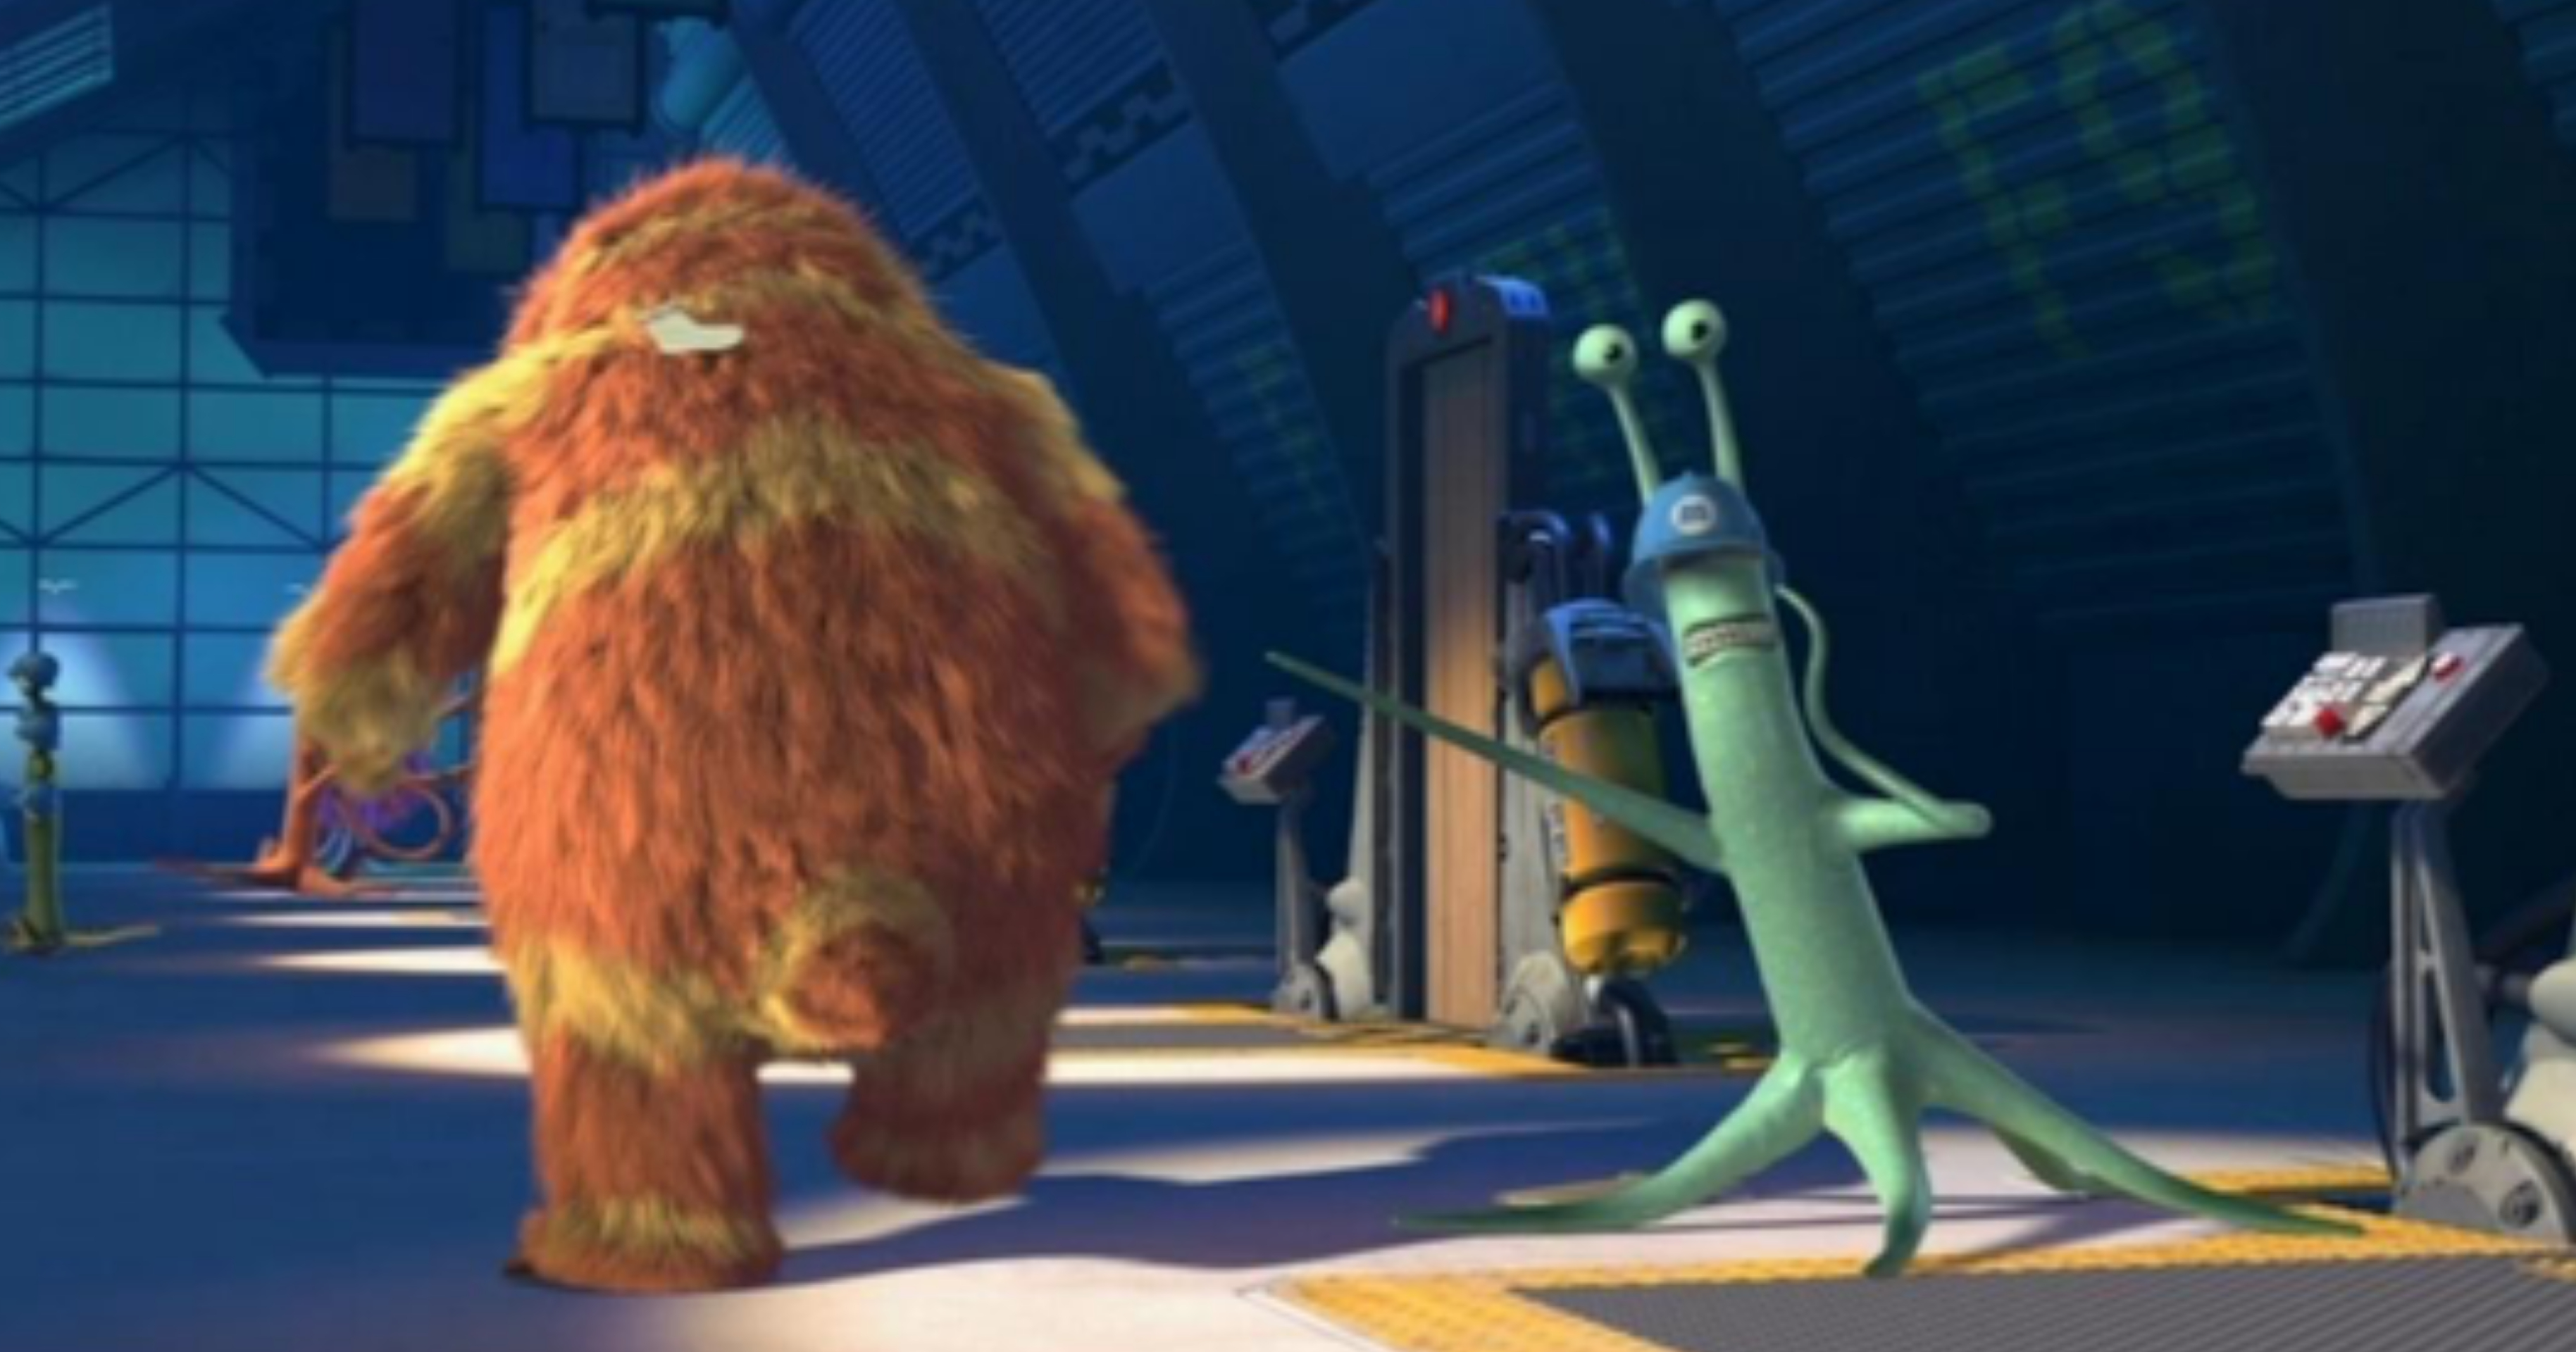 2319 Day Is Finally Here And Monsters Inc Fans Are Celebrating Disney News